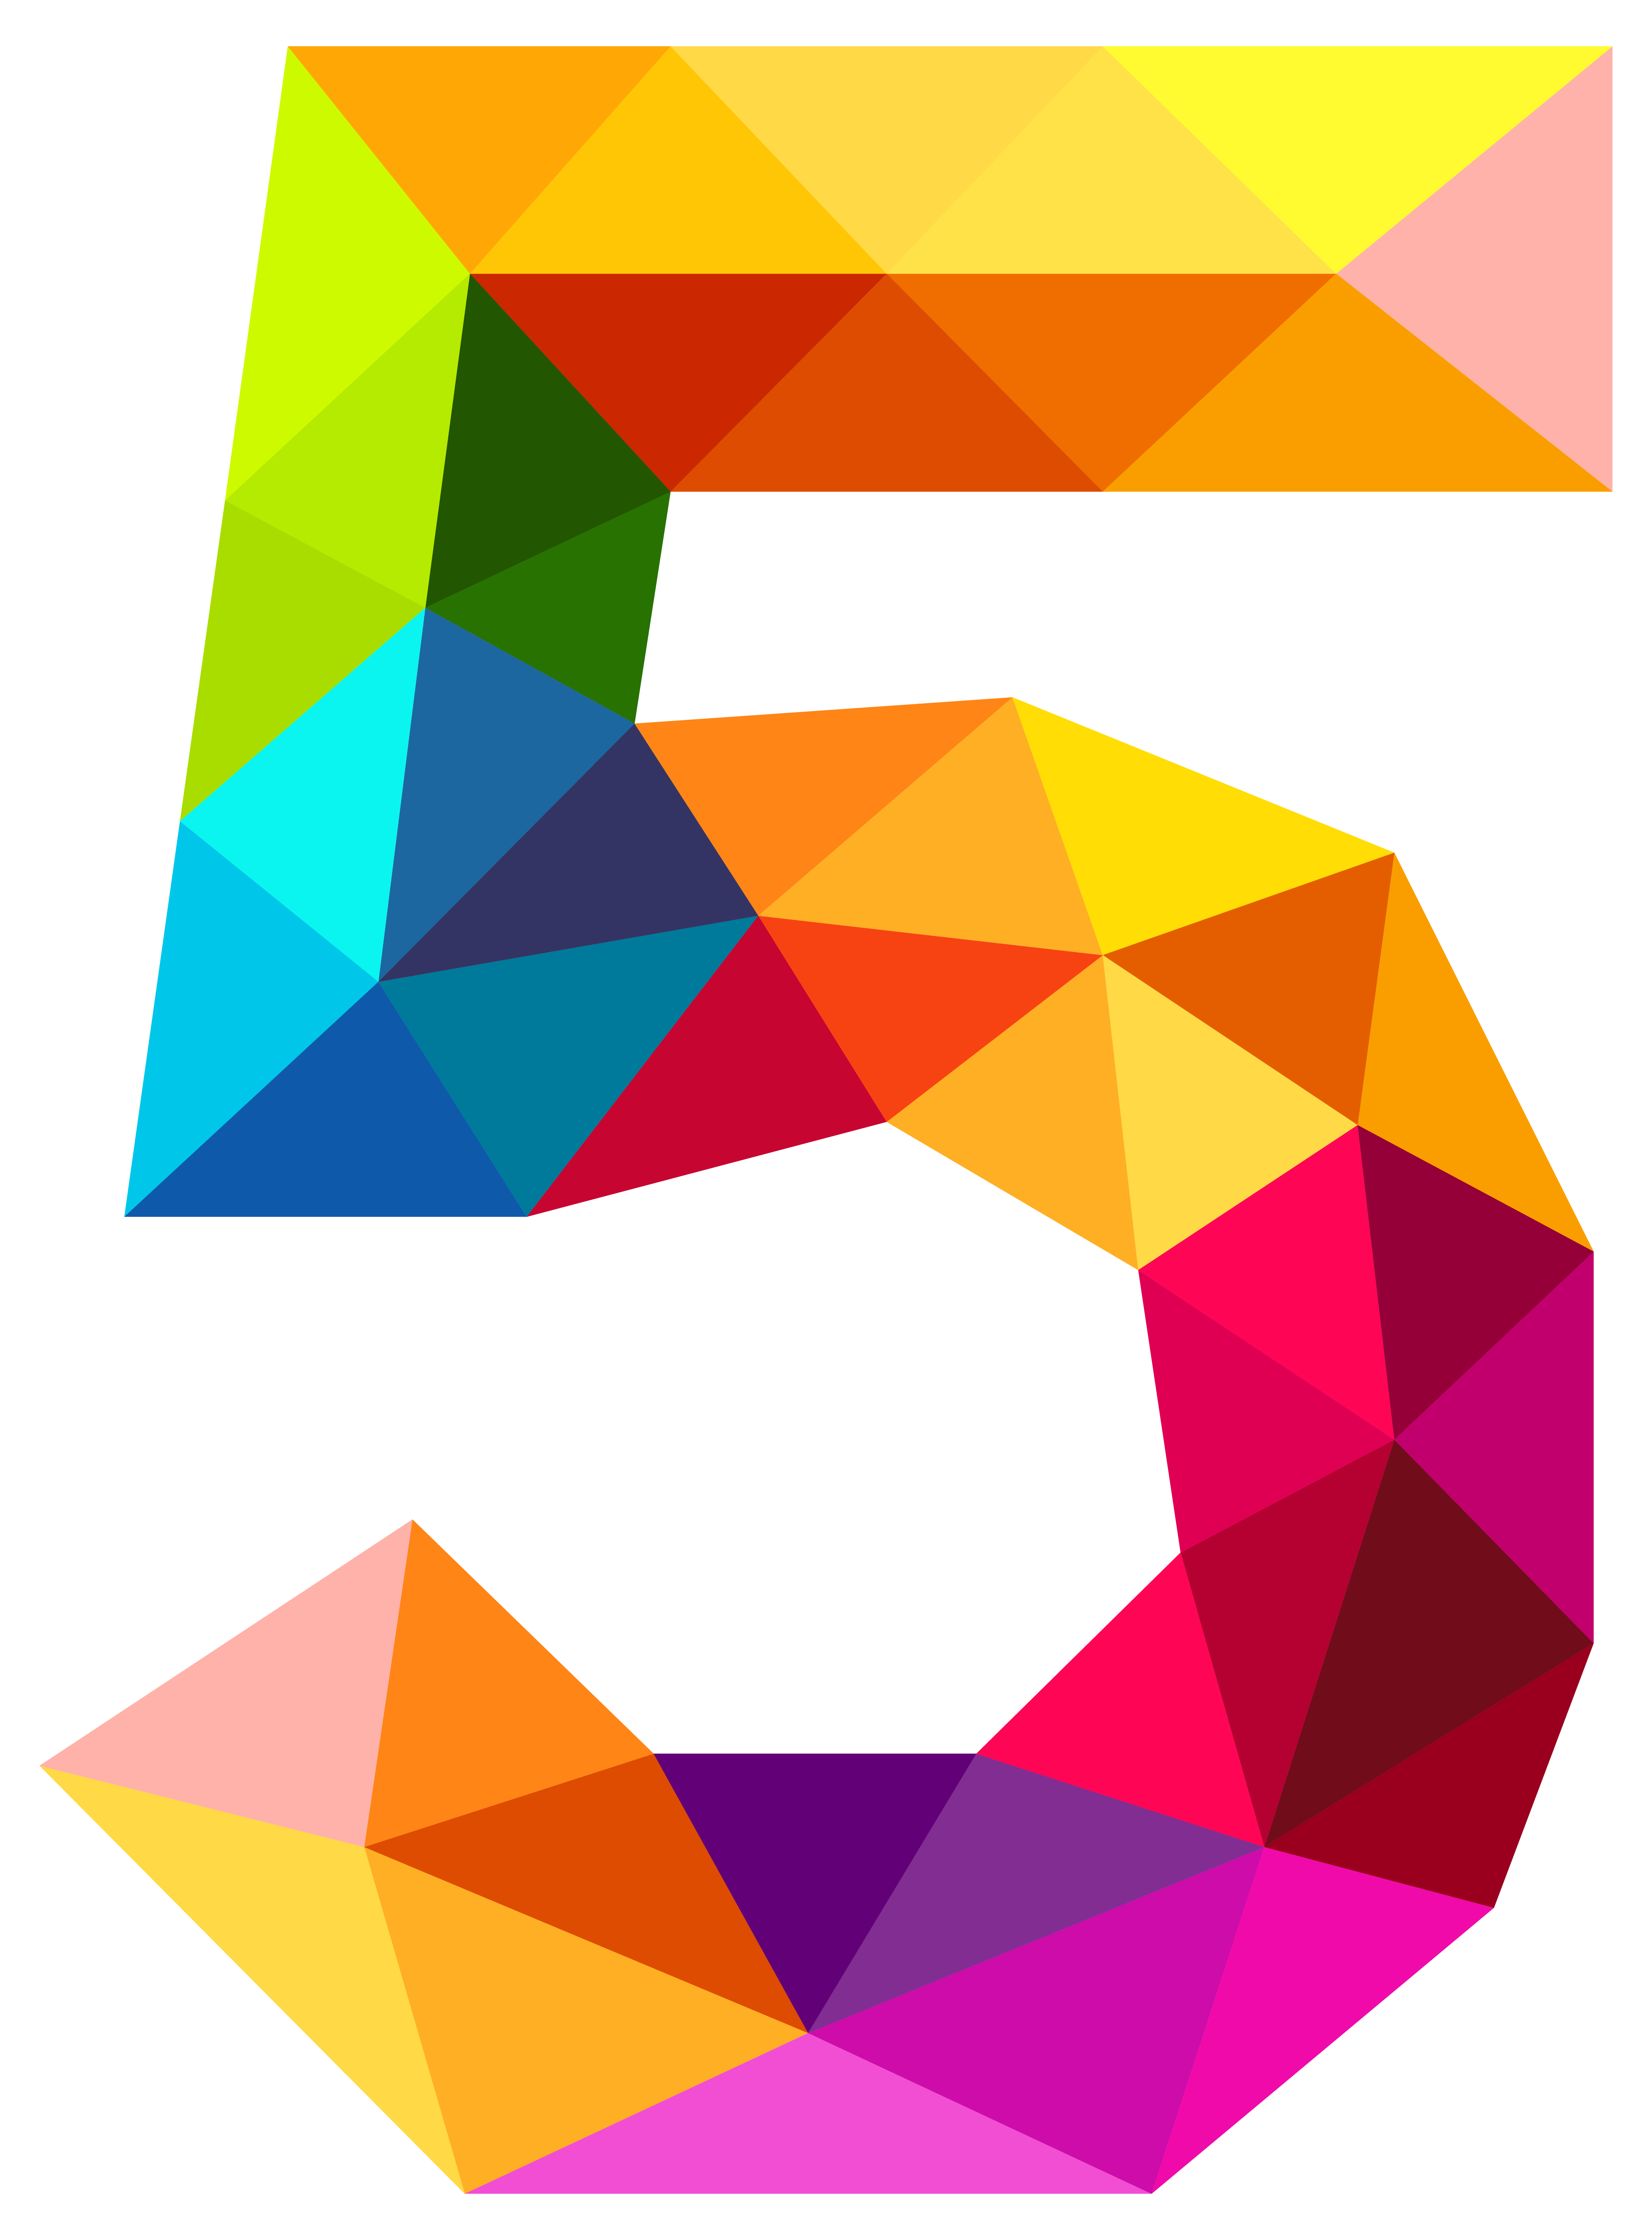 Colourful Triangles Number Five Png Clipart Image Gallery Yopriceville High Quality Images And Transparent Png Free Clipar Free Clip Art Clip Art Free Art